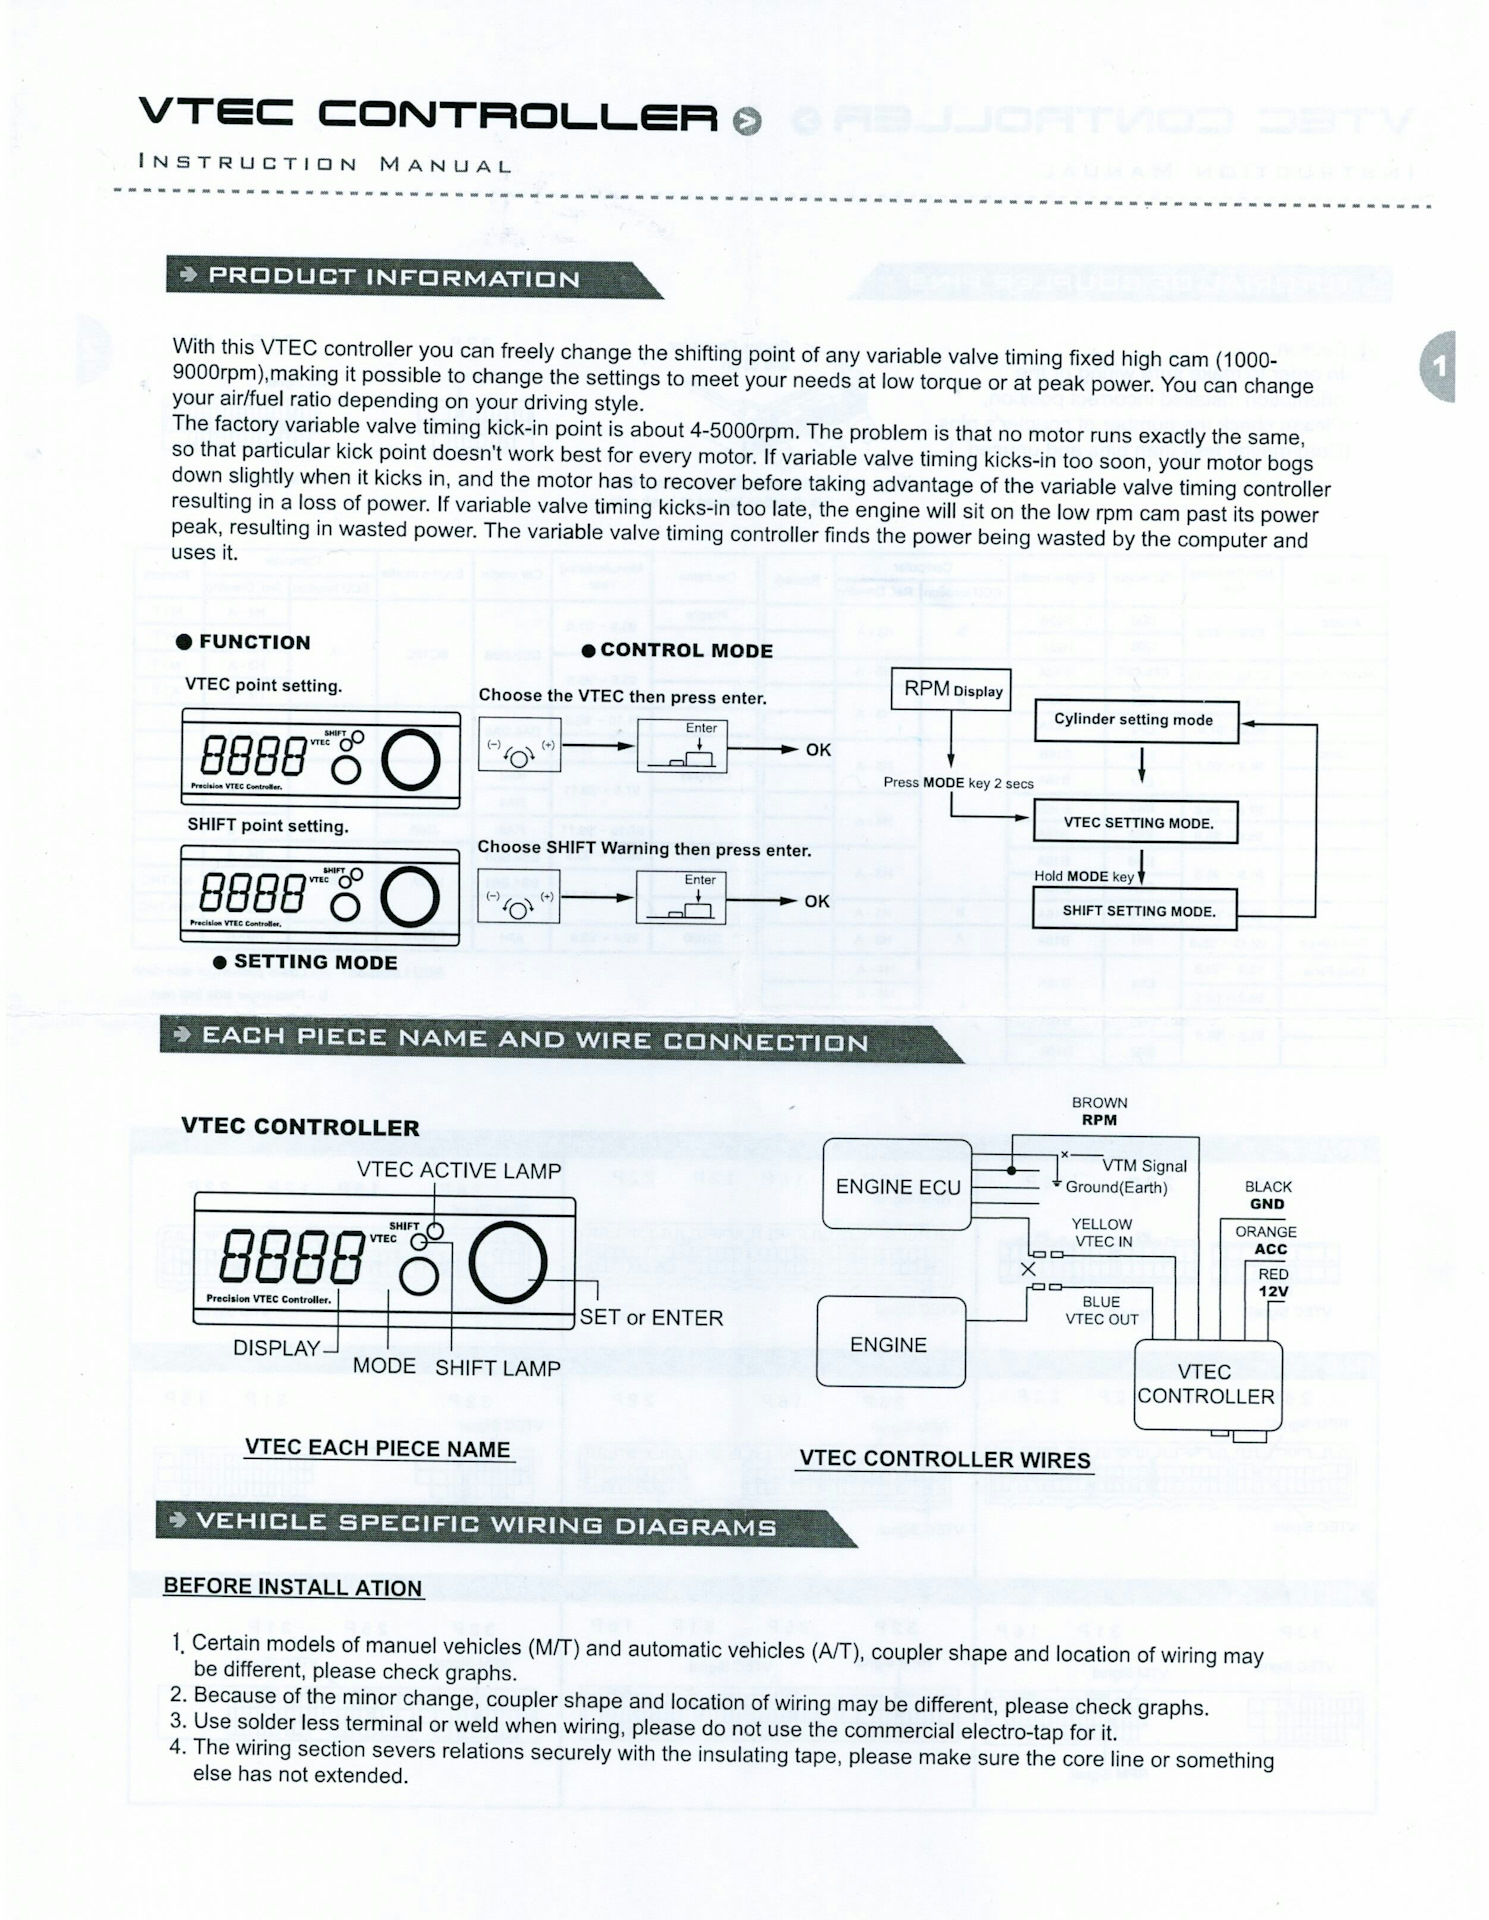 Apexi Vtec Controller Wiring Diagram Schematic Diagrams For Page 3 And Schematics Safc